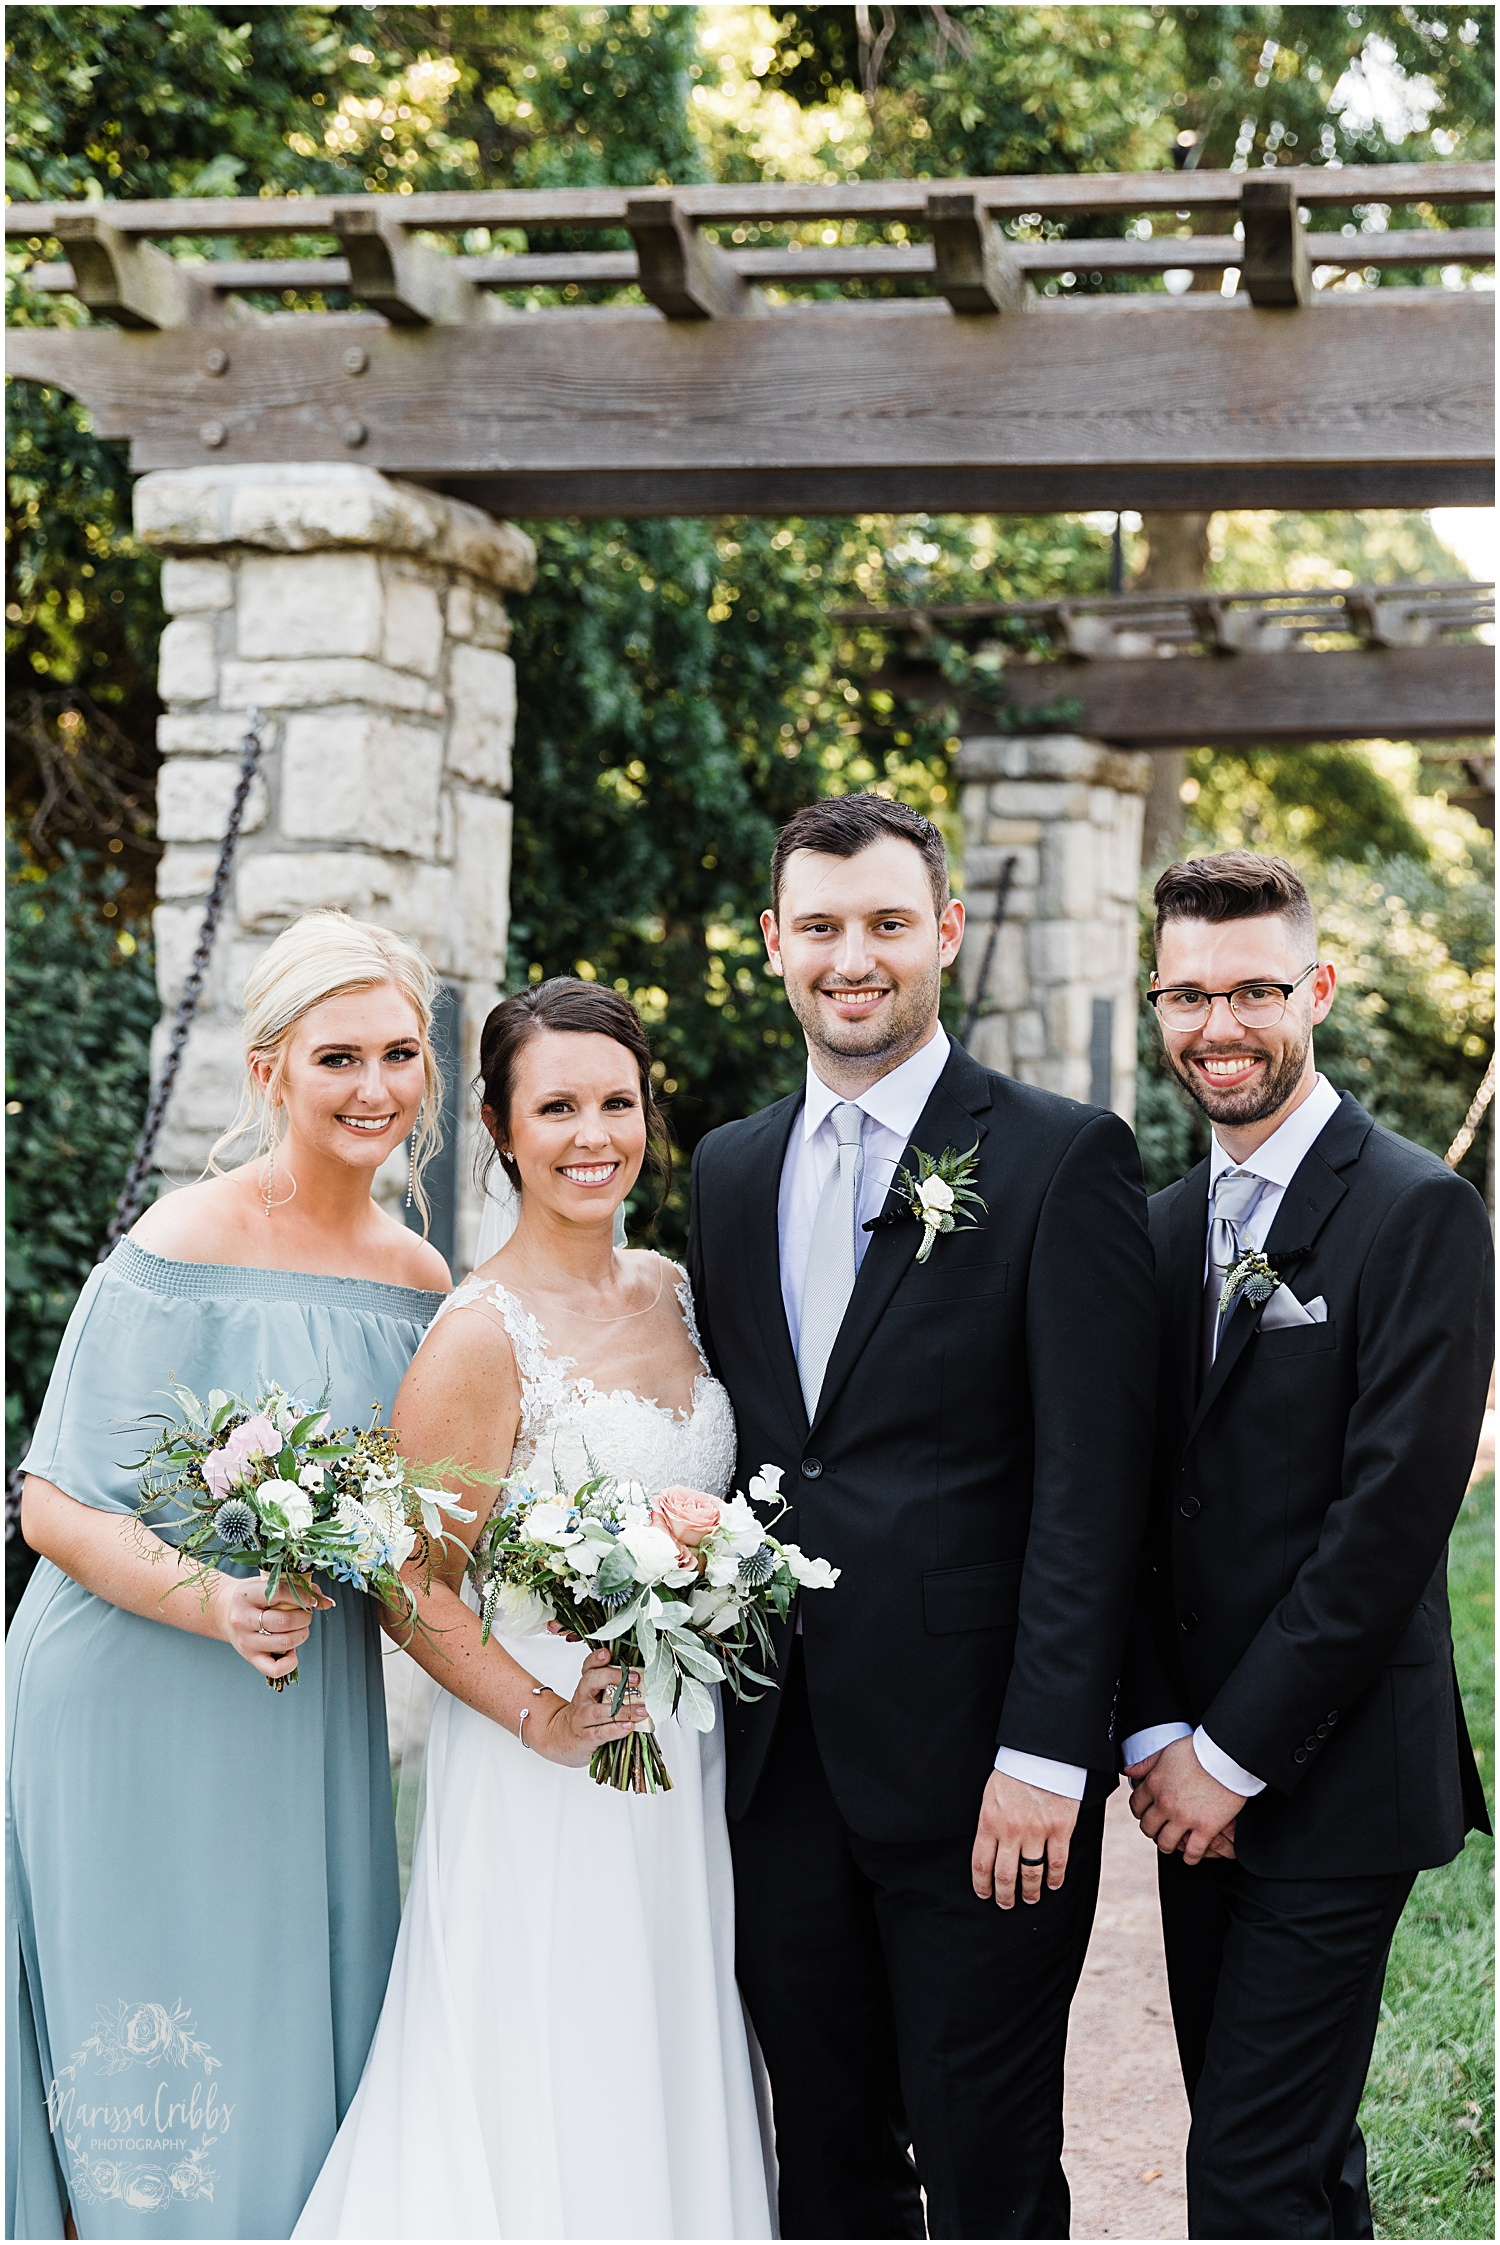 KELLY & MITCH MARRIED BLOG | MARISSA CRIBBS PHOTOGRAPHY | THE EVERLY EVENT SPACE_8865.jpg